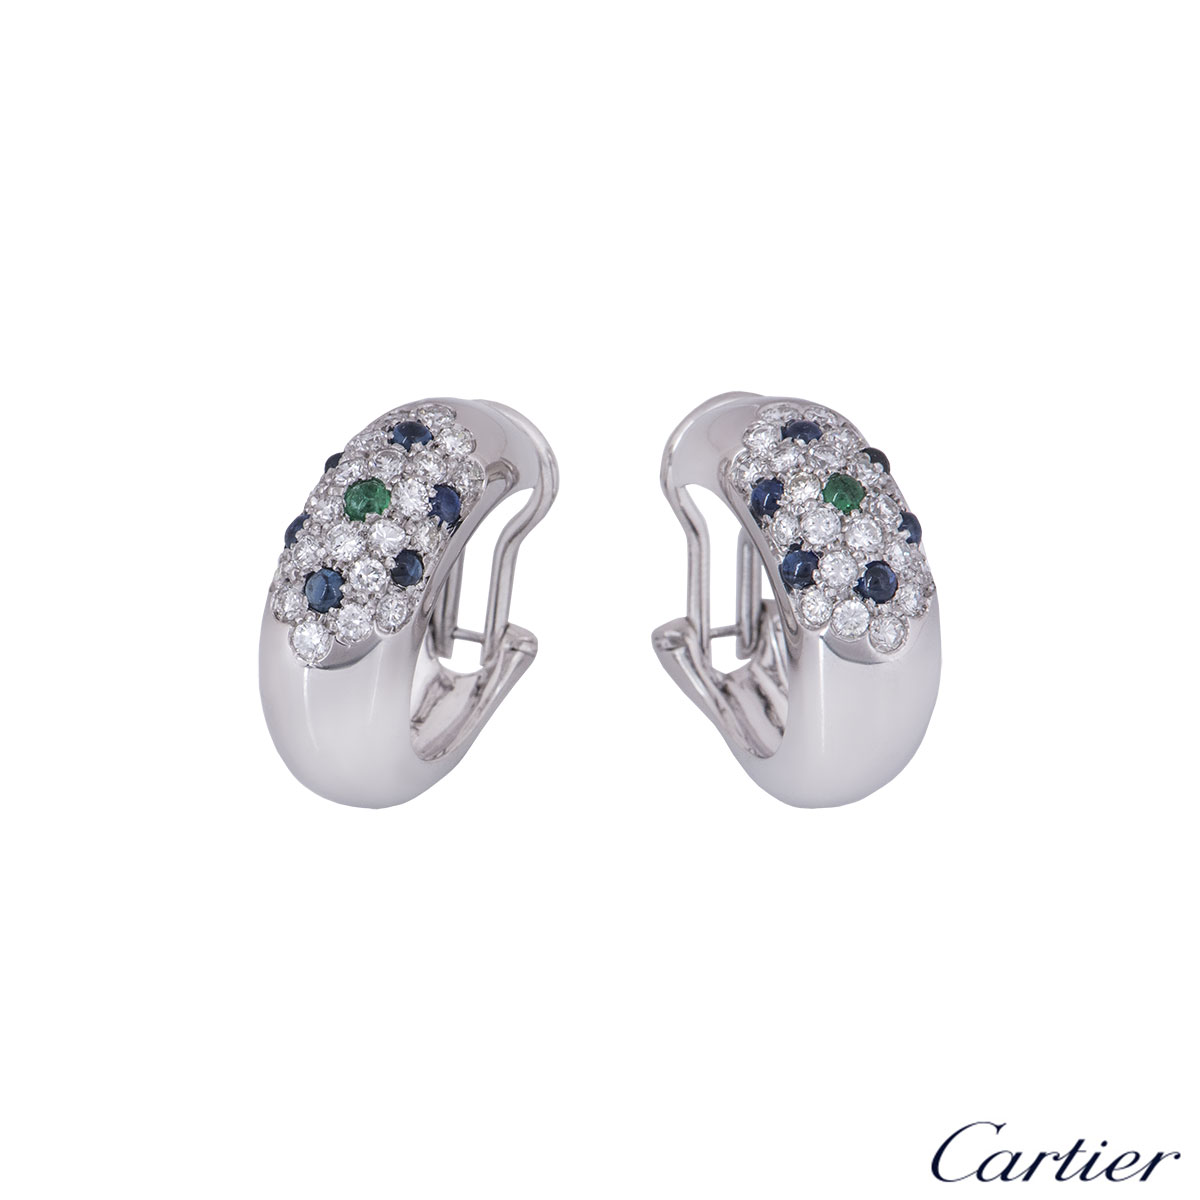 Cartier White Gold Diamond, Sapphire and Emerald Earrings